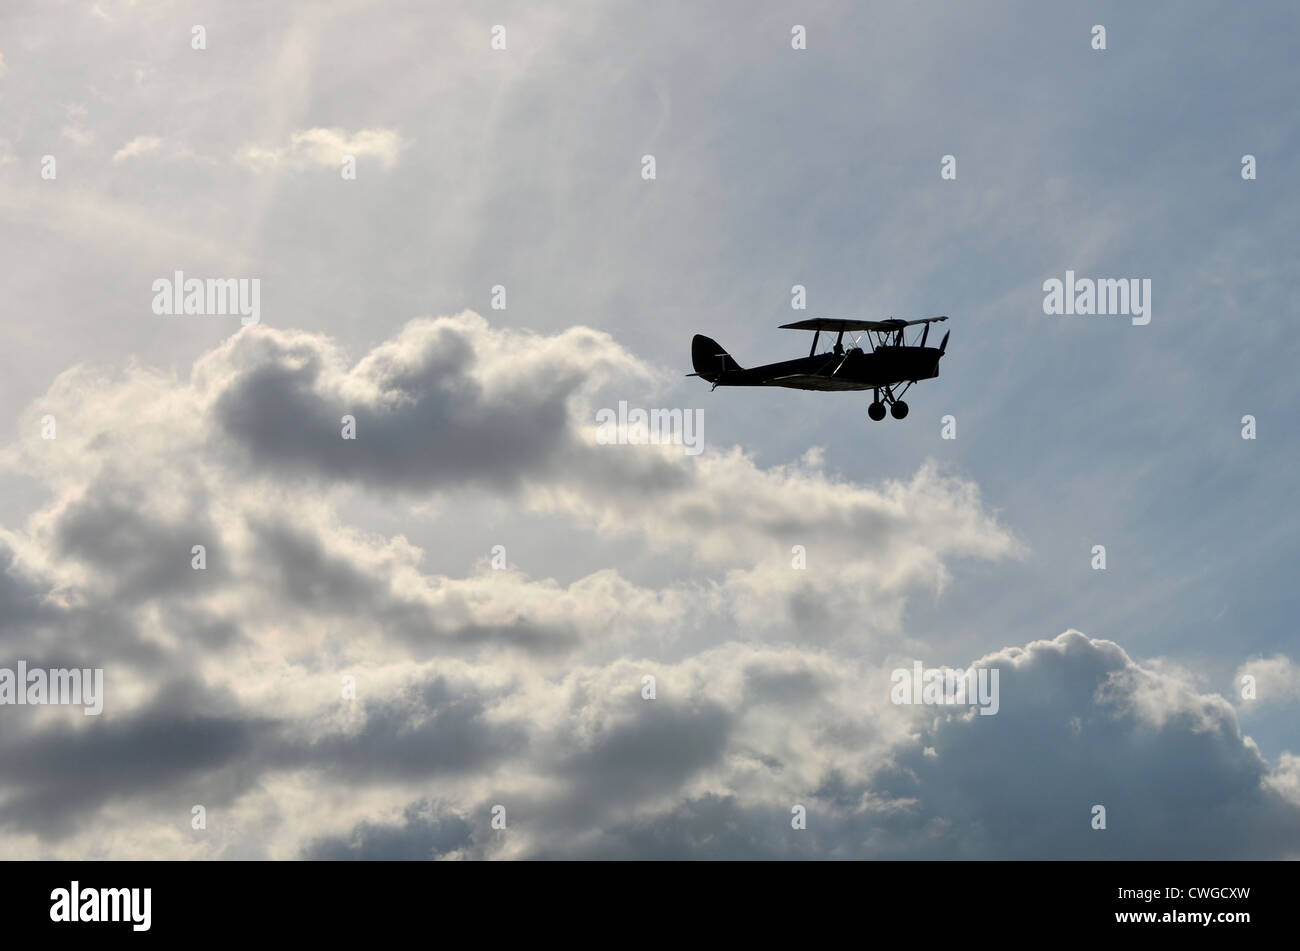 Silhouetted bi-plane against a cloudy sky - Stock Image